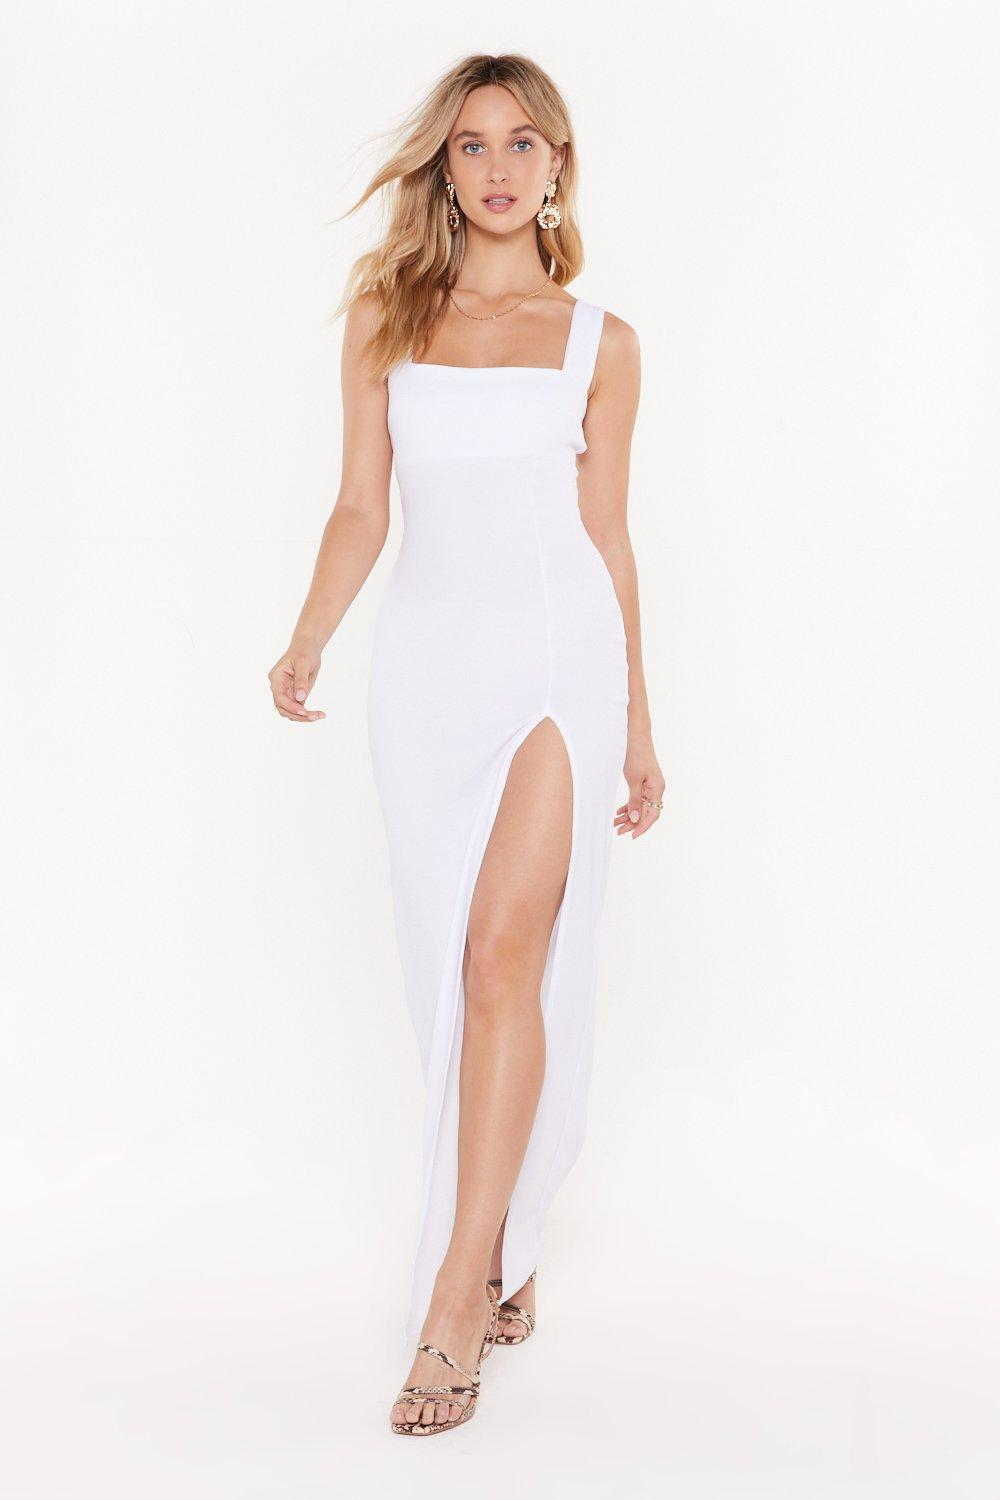 Square With Me Maxi Dress